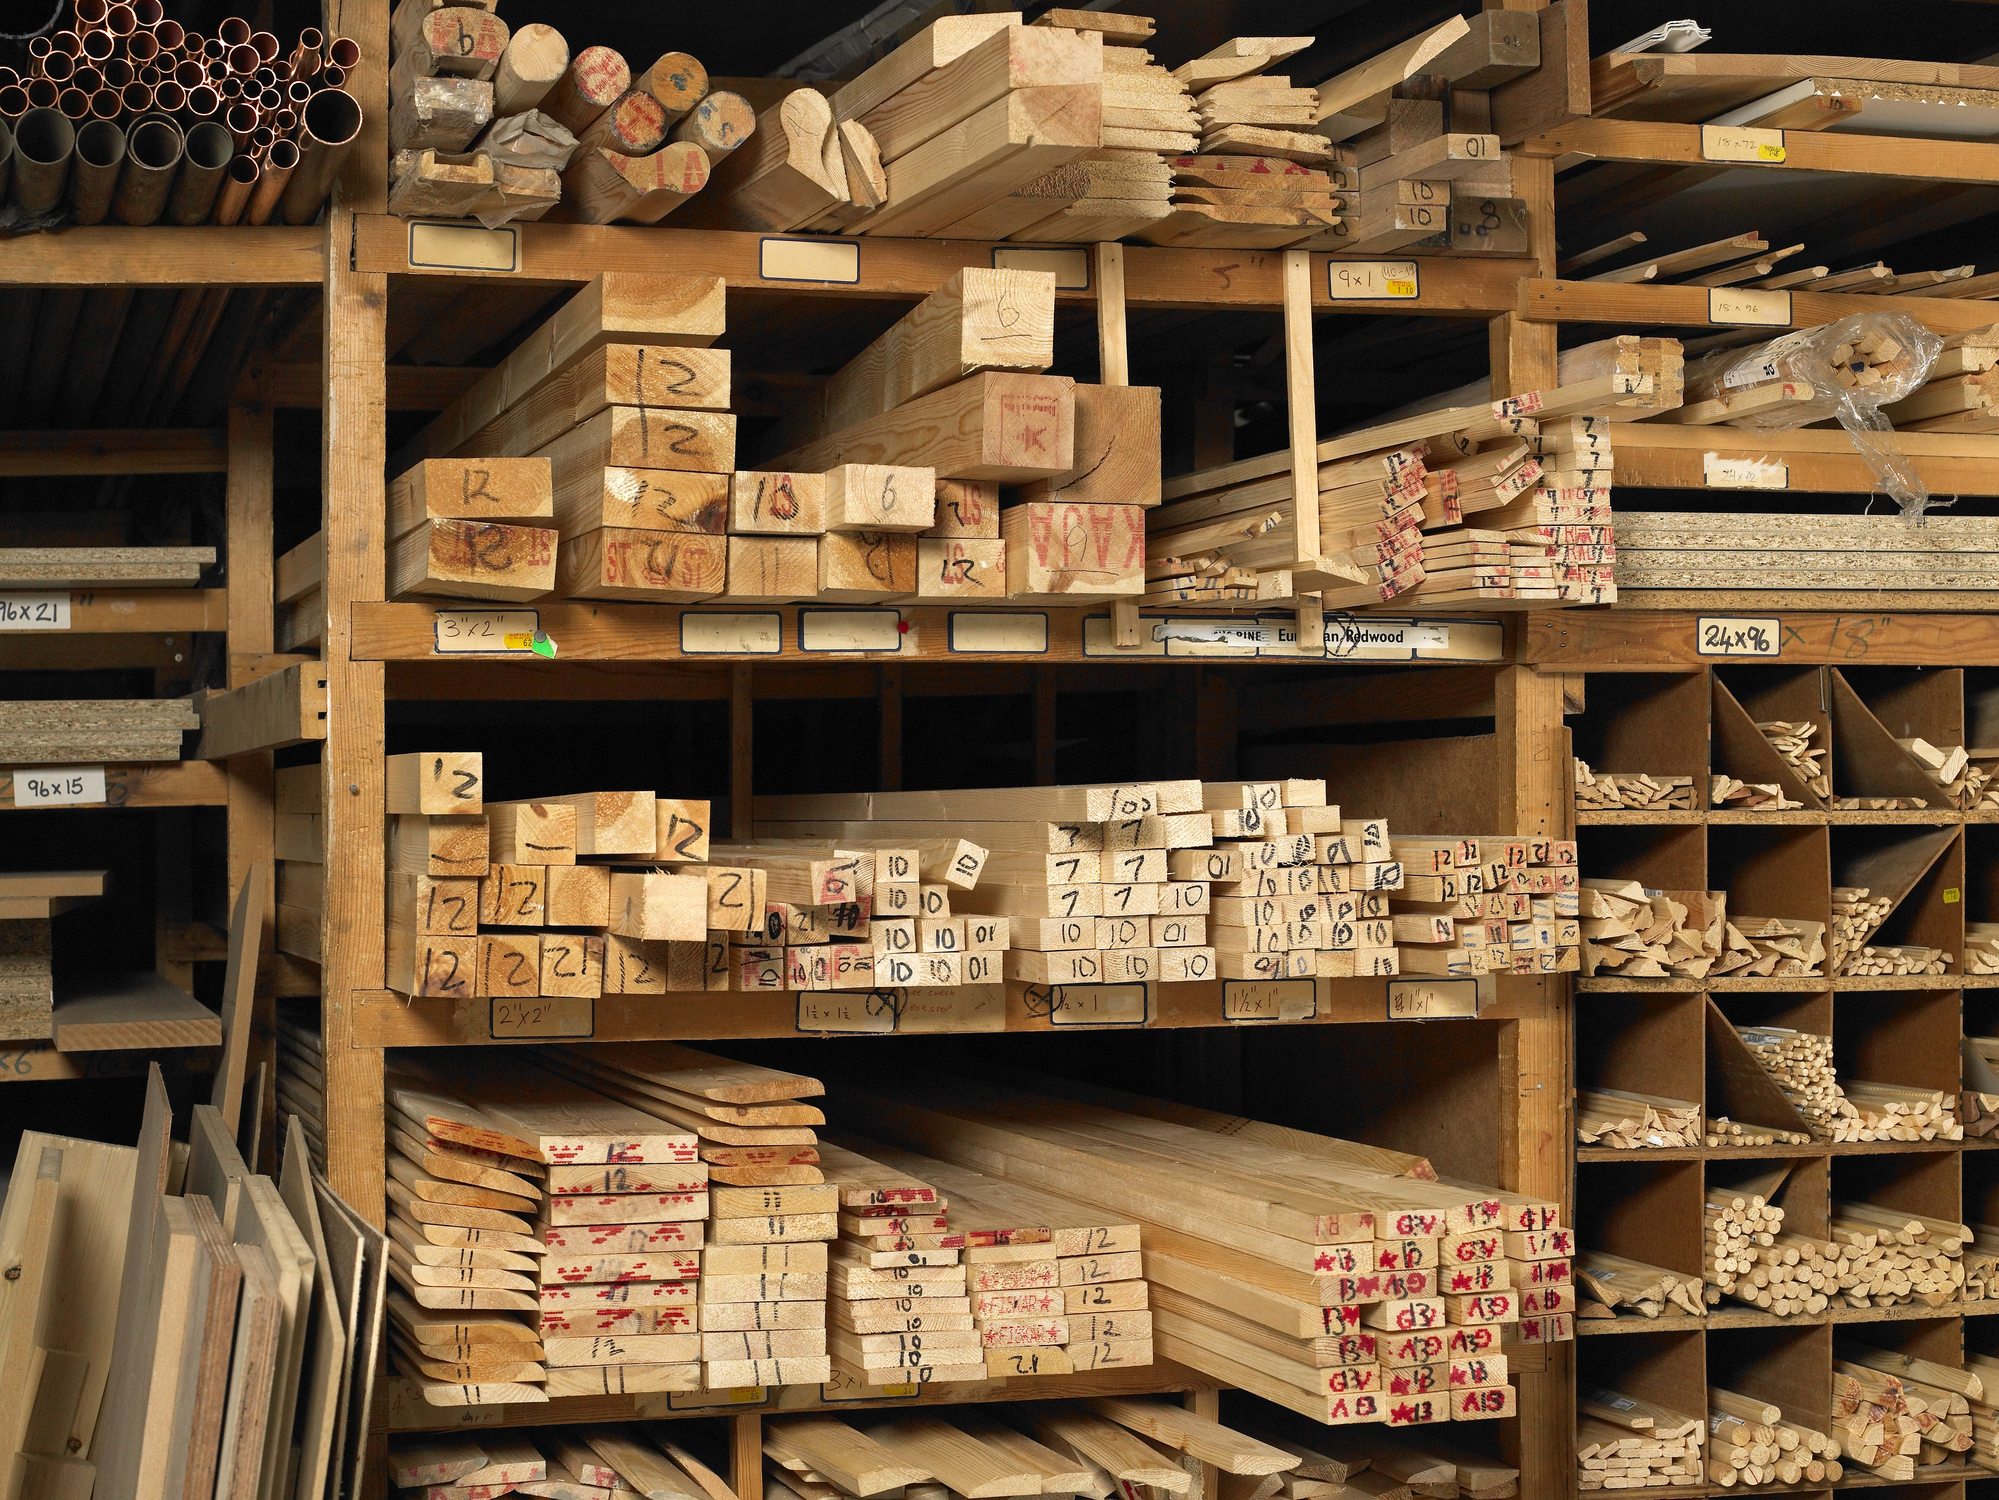 Planks of wood on shelves